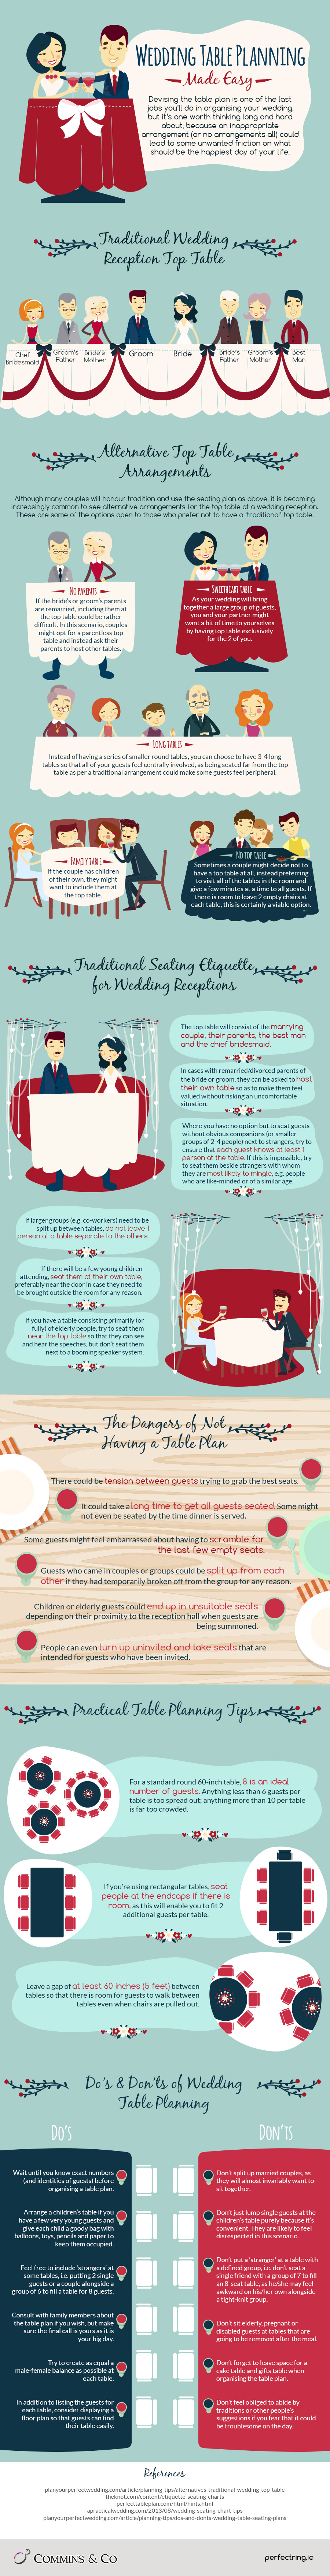 Wedding-Table-Planning-Made-Easy-PerfectRing